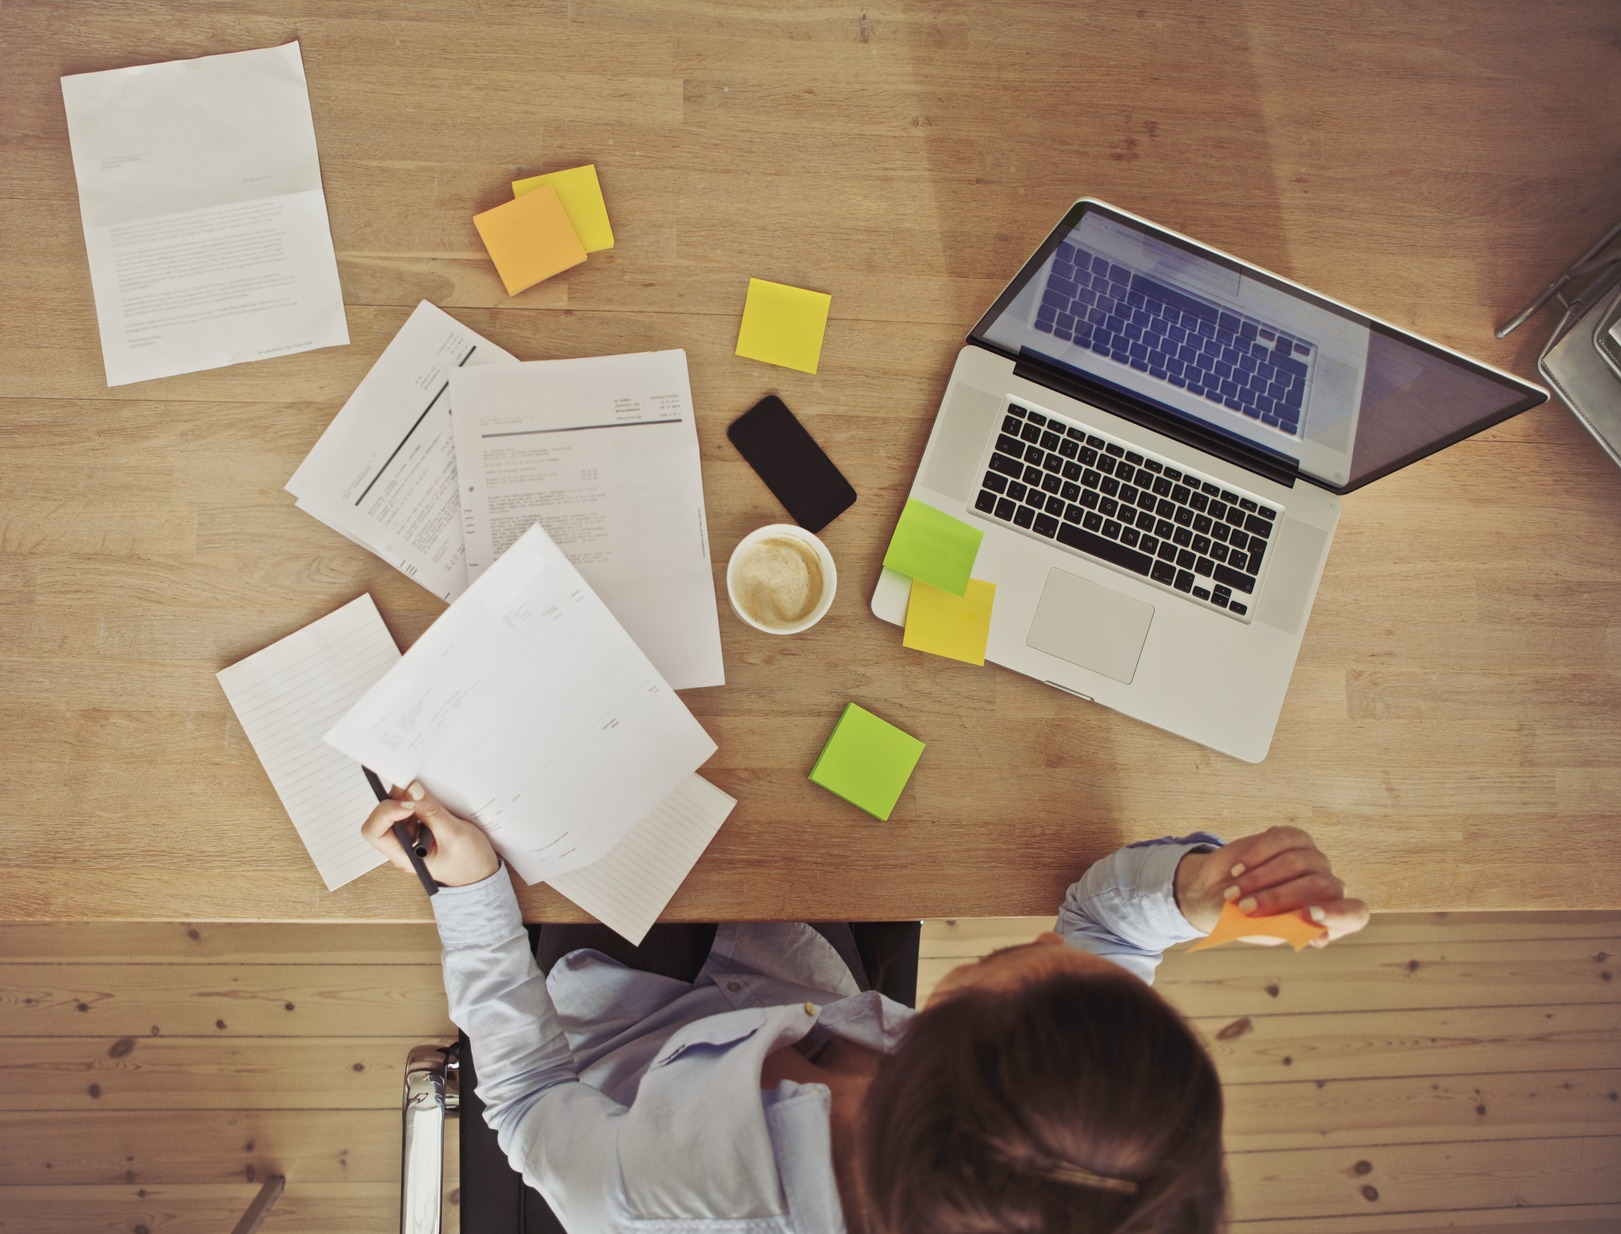 Top view of young woman working at her desk with laptop and documents. Business woman working at desk in office.